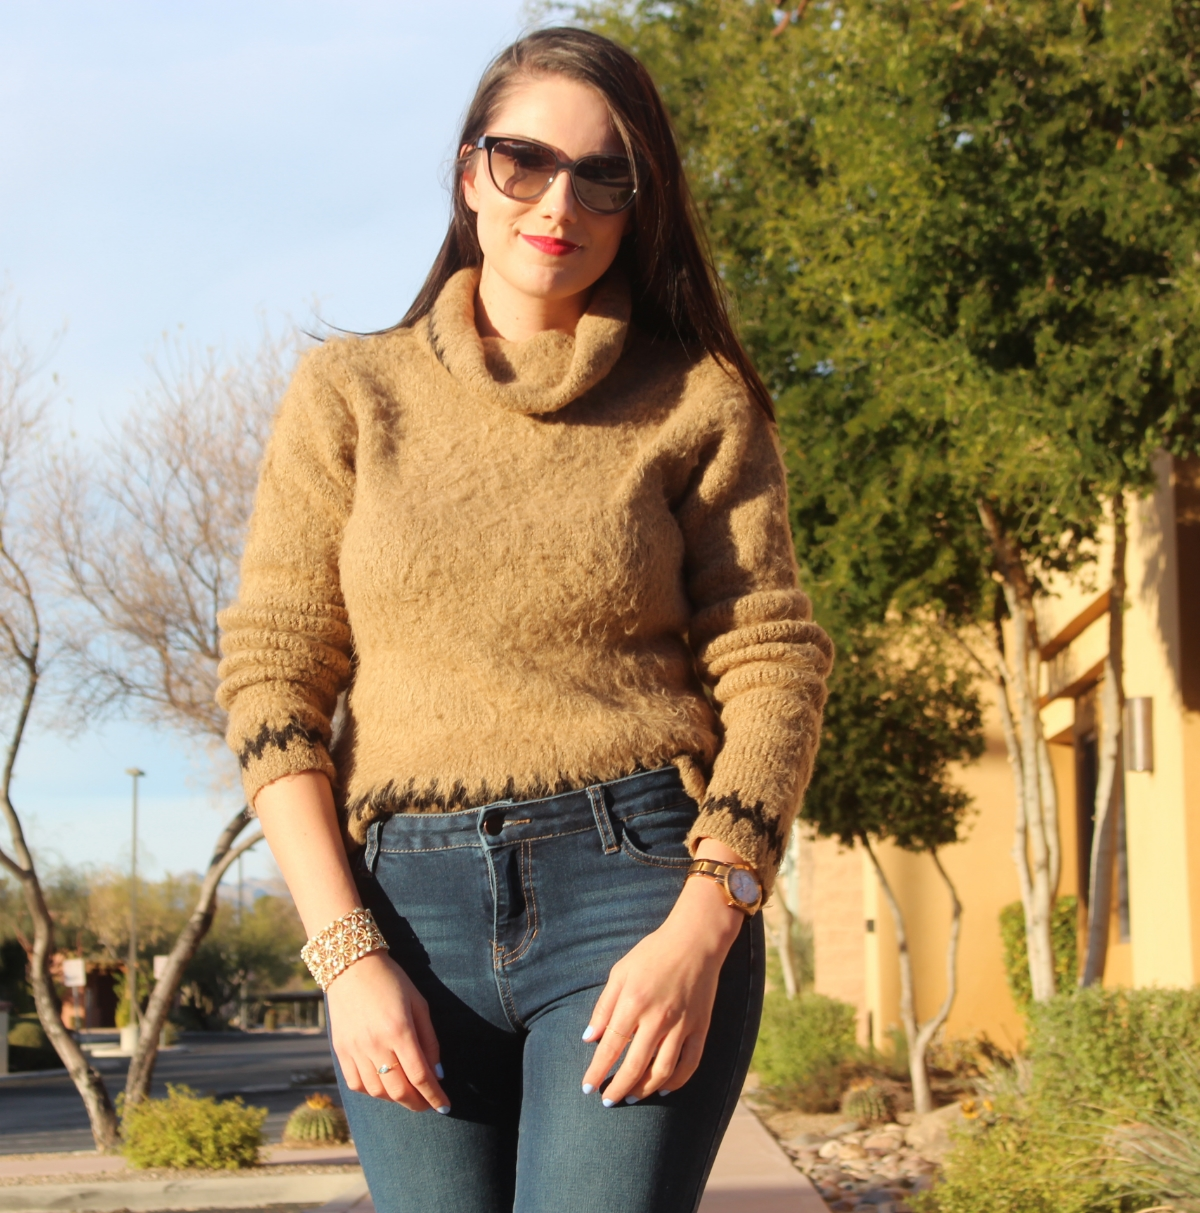 This is a close up of the top half of my body, featuring my Jimmy Choo sunglasses and a tan ASOS sweater.